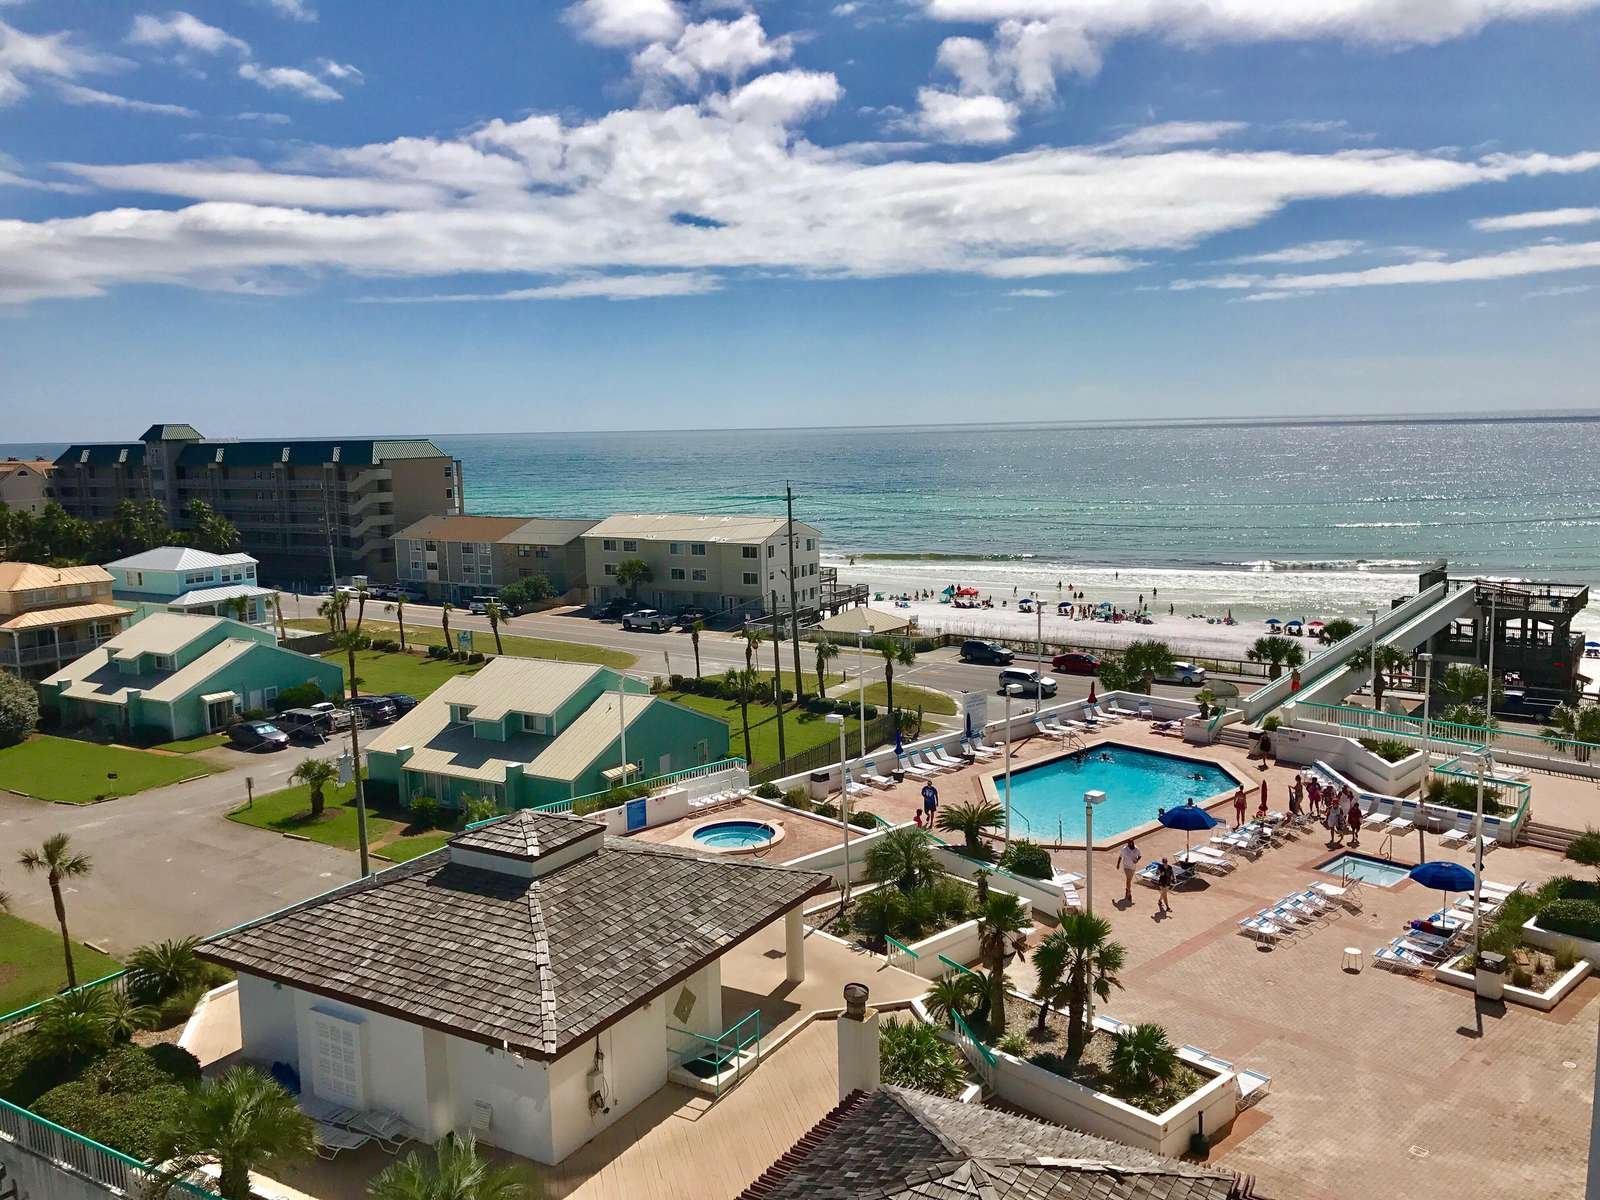 View from the balcony onto Surfside's pool deck.